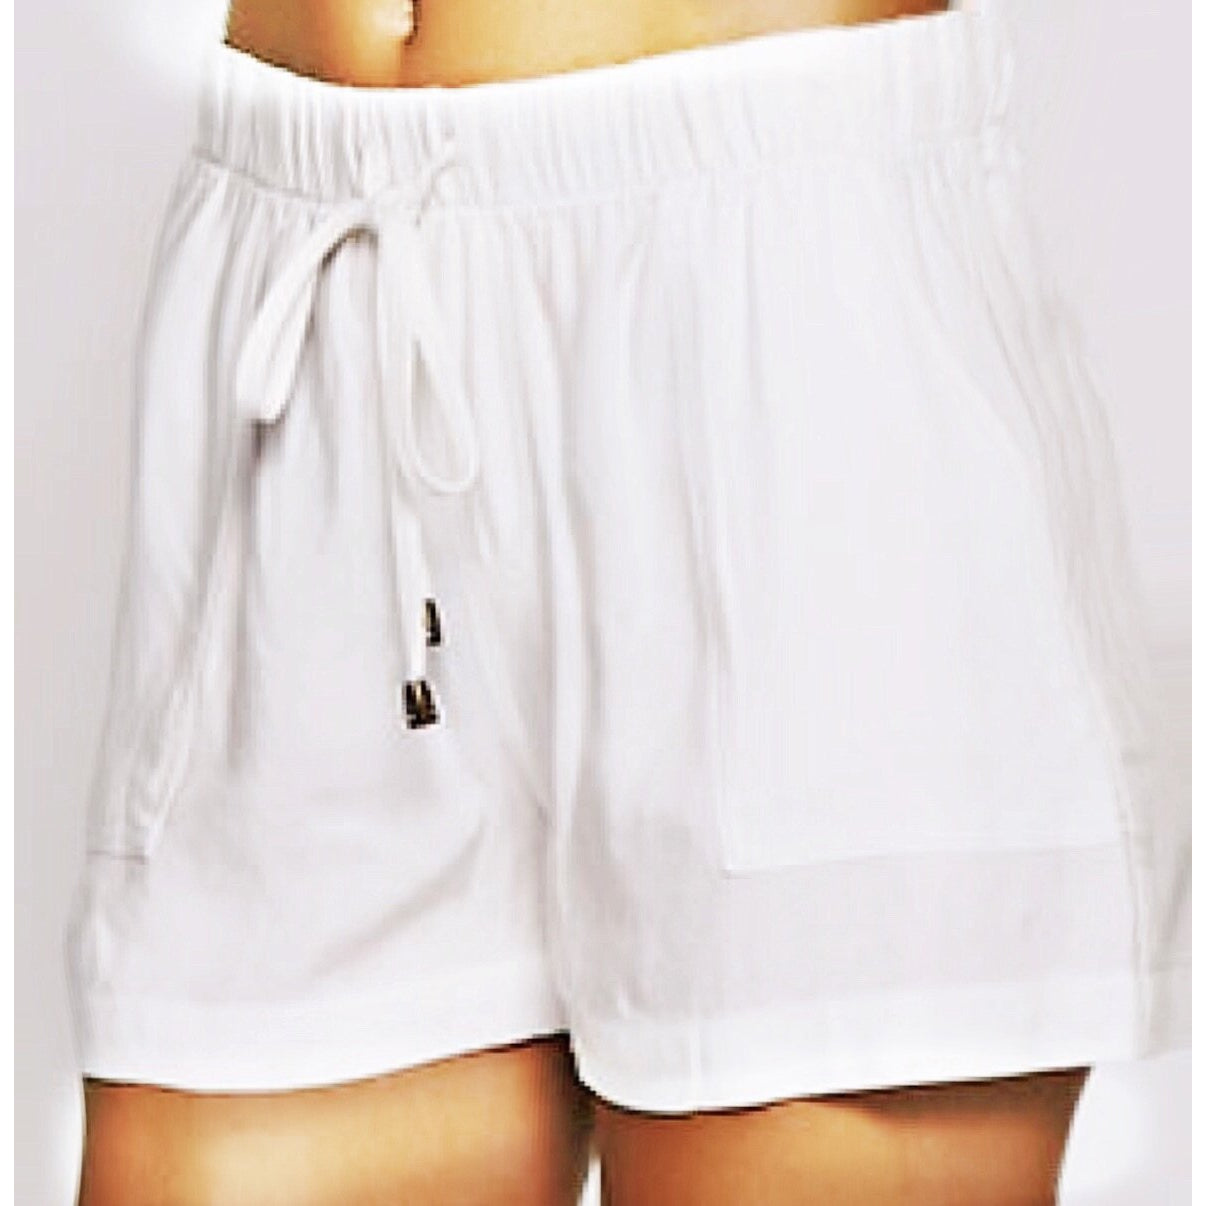 Zahara Shorts in Just A Little Off  White